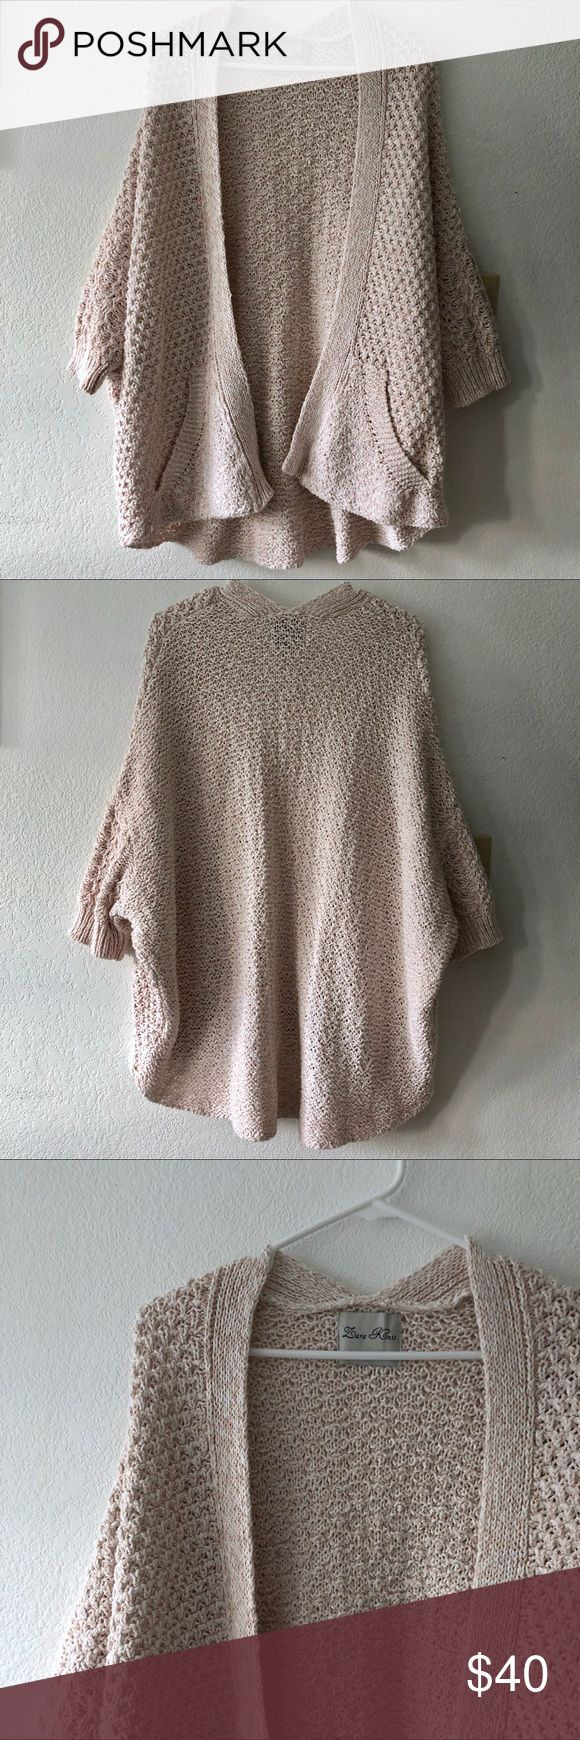 Zara Knit Open Shawl Cardigan • Baby pink colour • Dolman sleeve • Hangs open, no closure • Loose, relaxed fit (will fit Size S - L) • Has hand pockets • Beautiful intricate knit  • Excellent condition! • No damages Zara Sweaters Cardigans